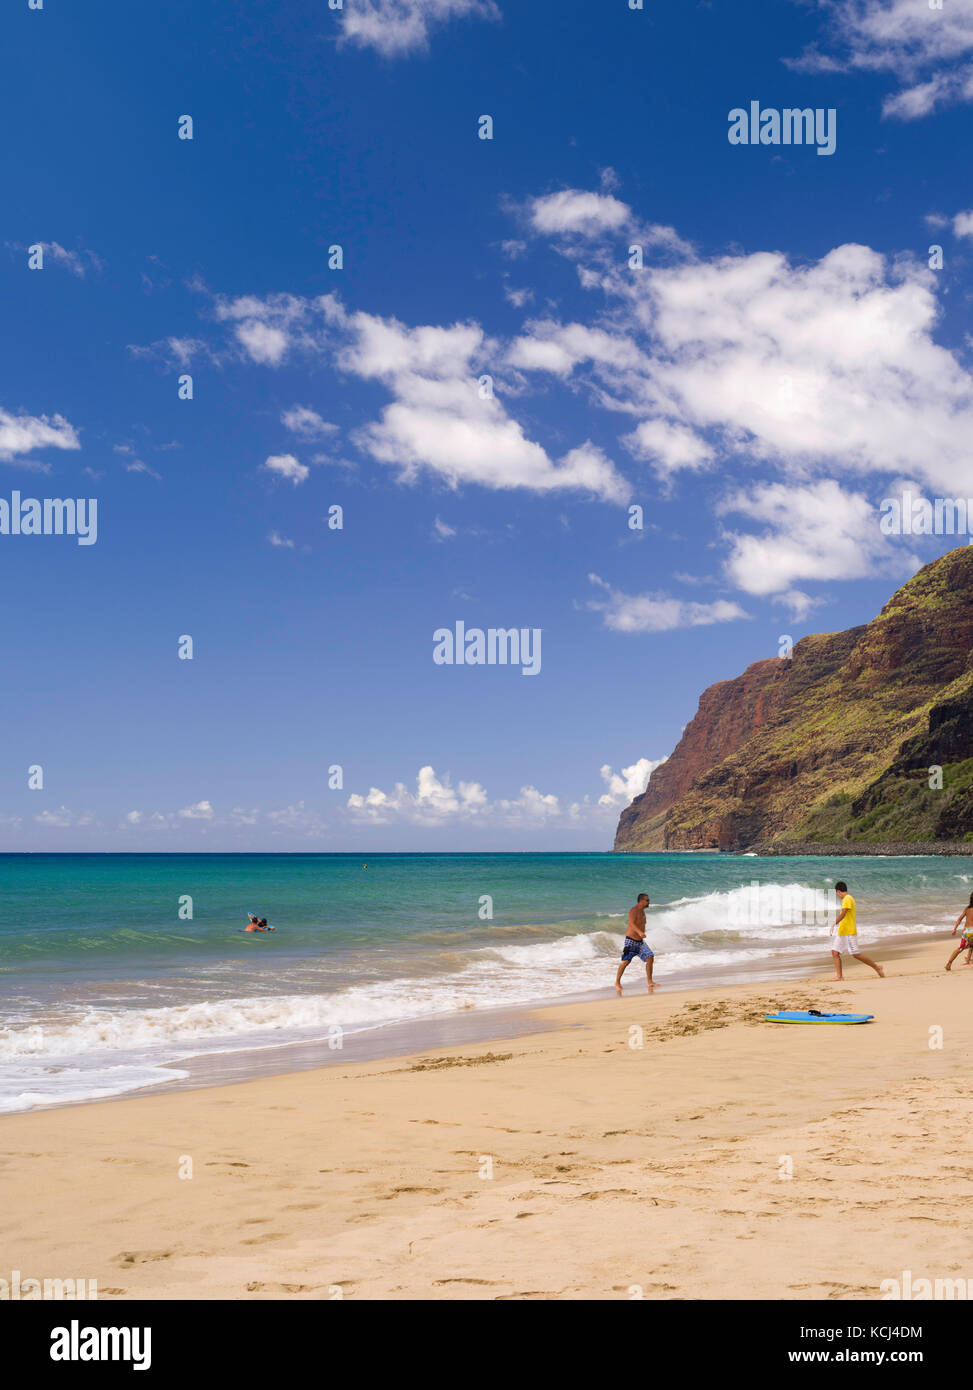 People enjoying the surf at Polihale State Park and its barking sands on the west coast of Kauai, Hawai'i. Stock Photo